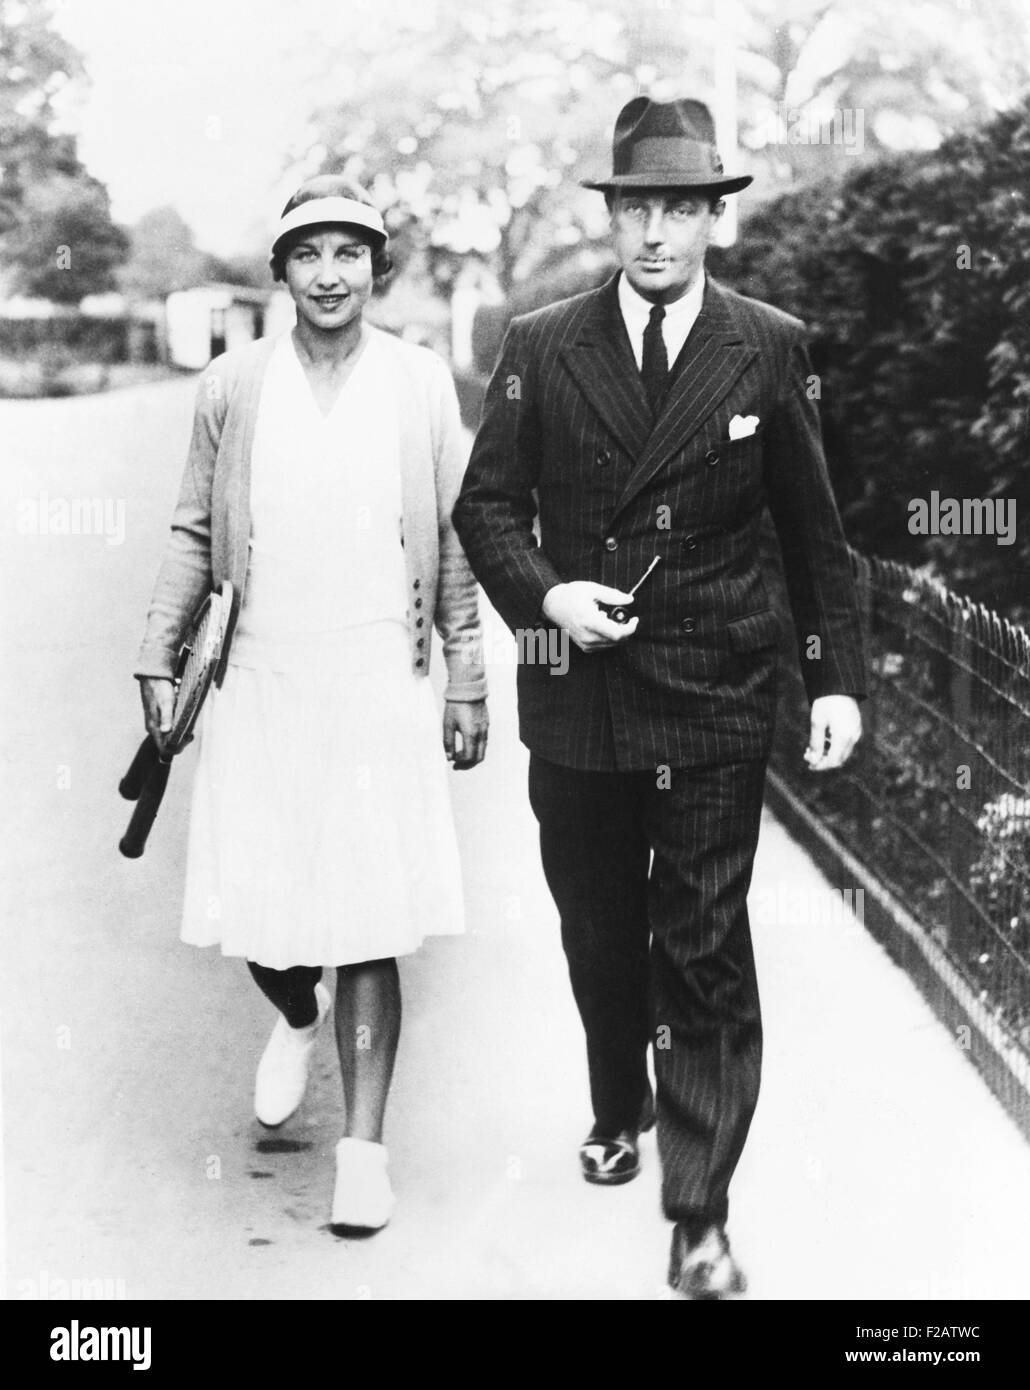 Helen Wills Moody arrives at Wimbledon Courts with her husband, Frank Moody, Jr. June 6, 1933. Wills Moody won her - Stock Image